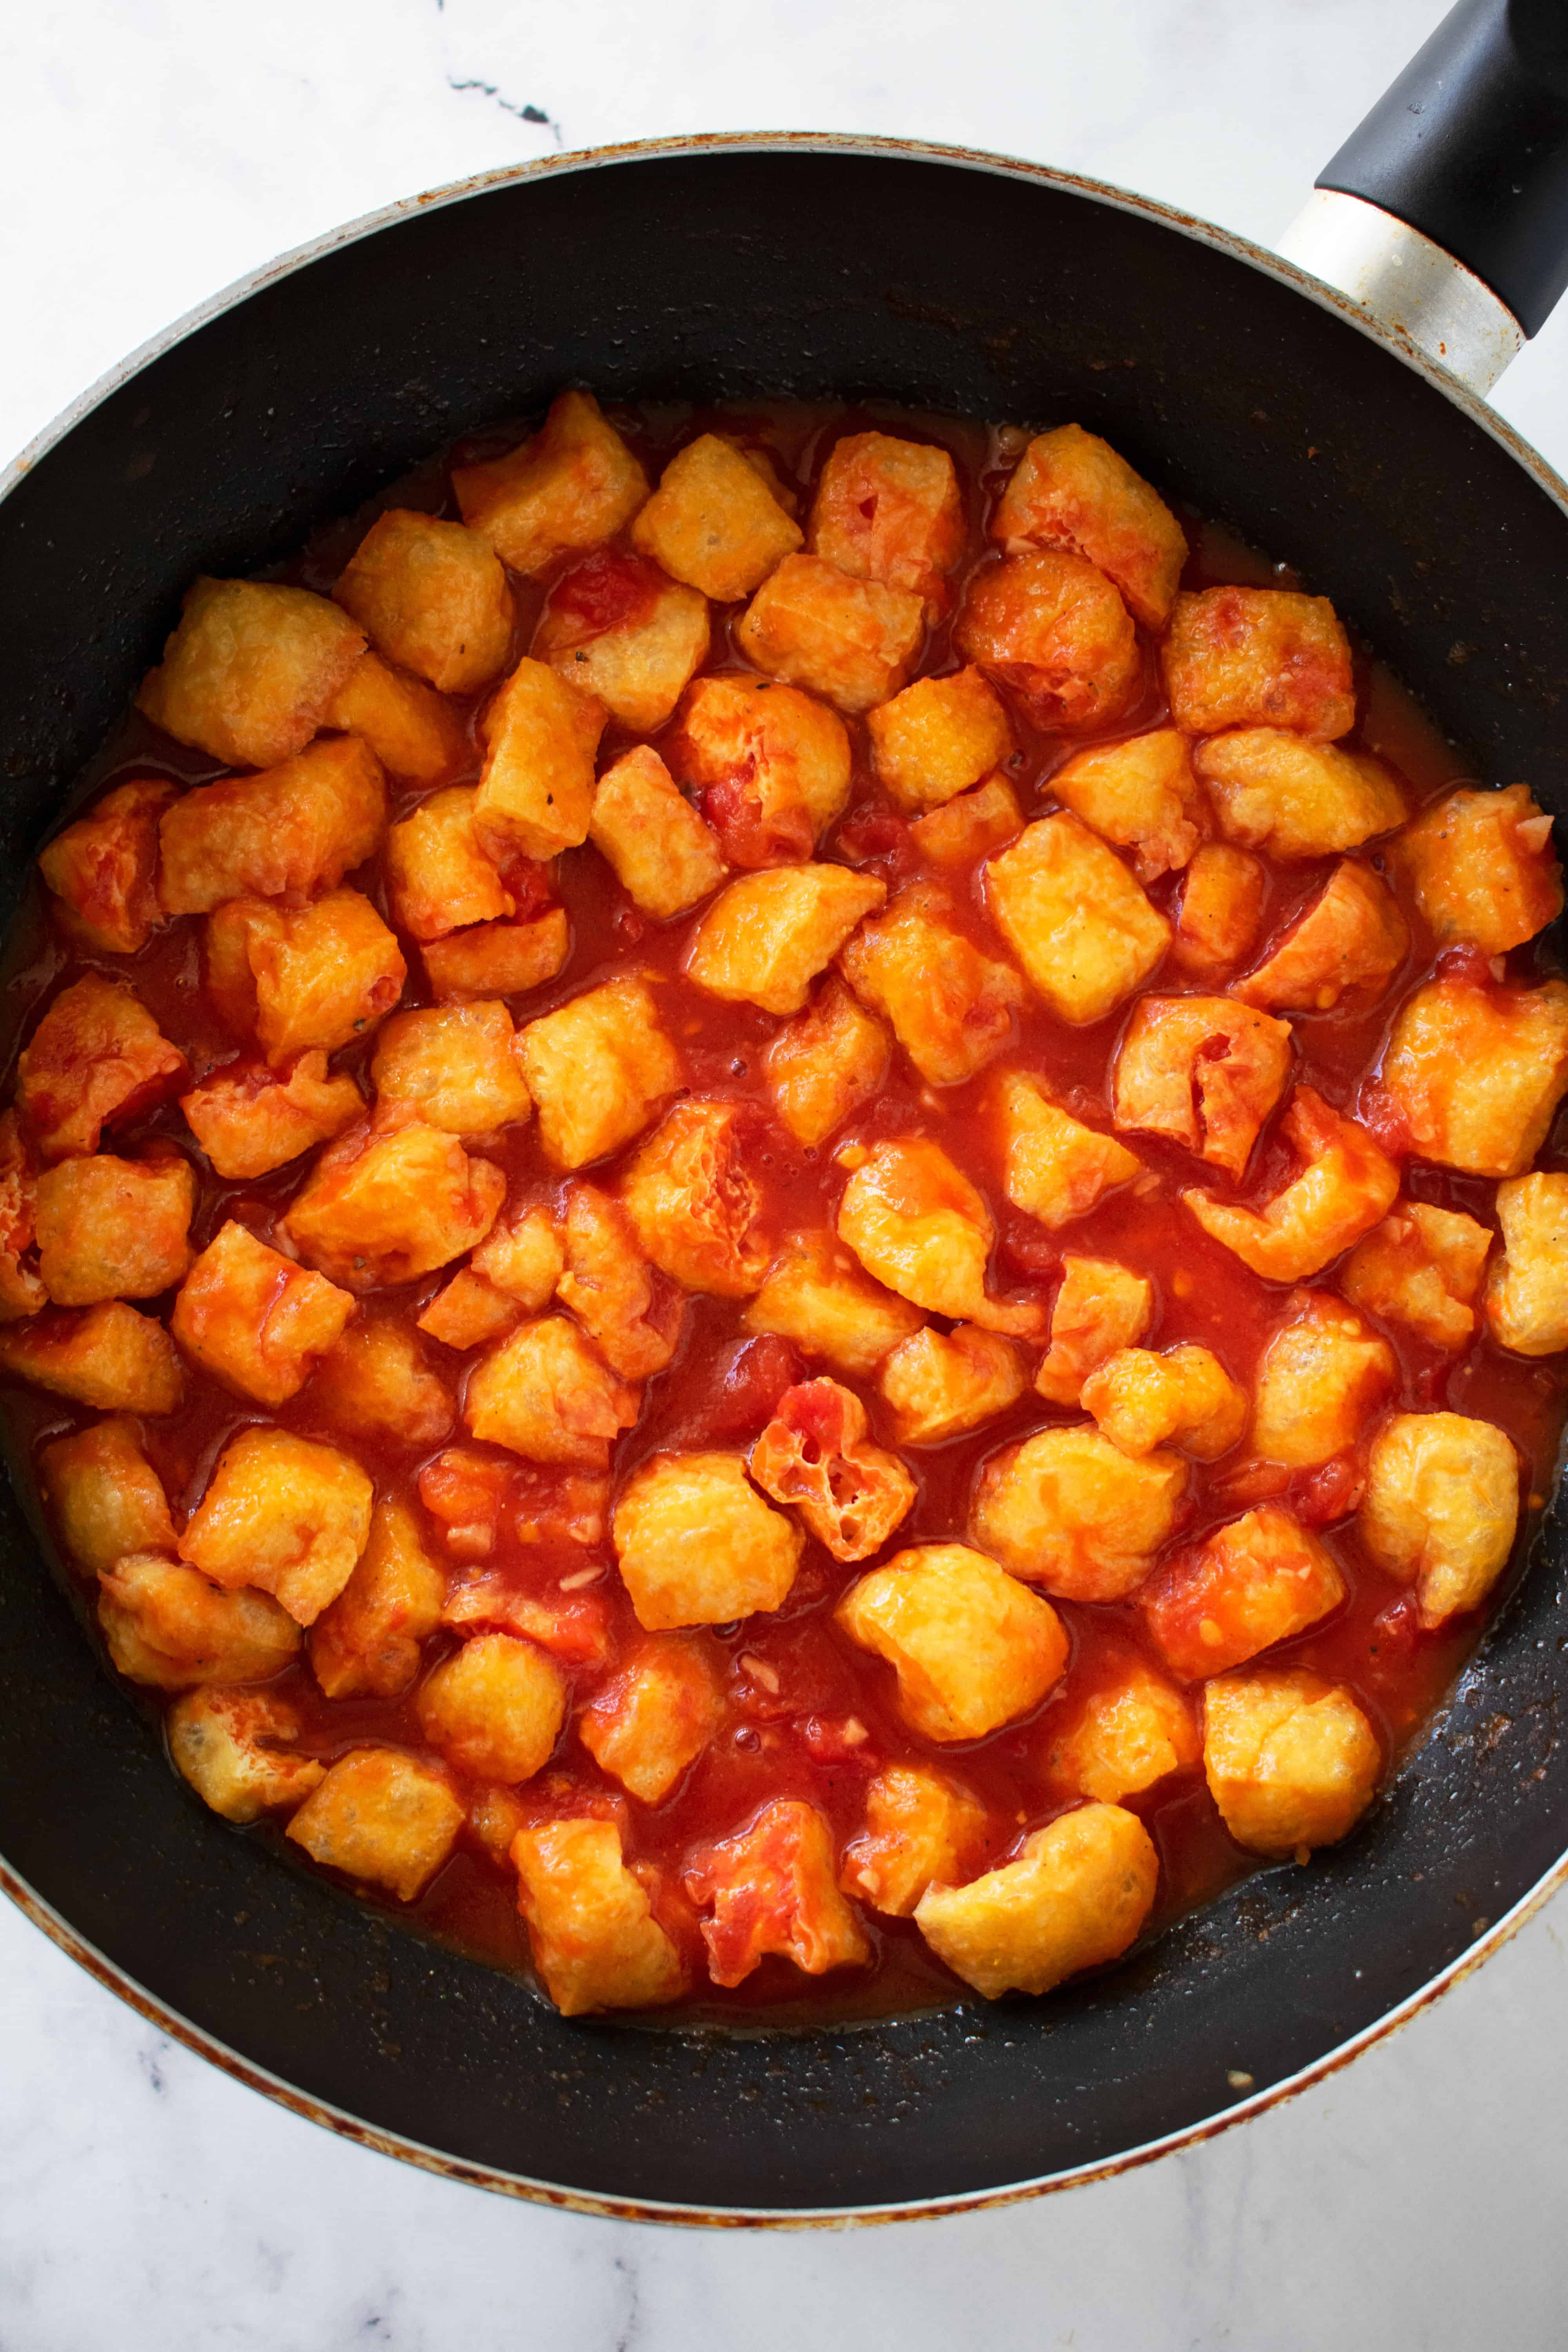 Tofu puffs drenched in red tomato sauce in a black fry pan